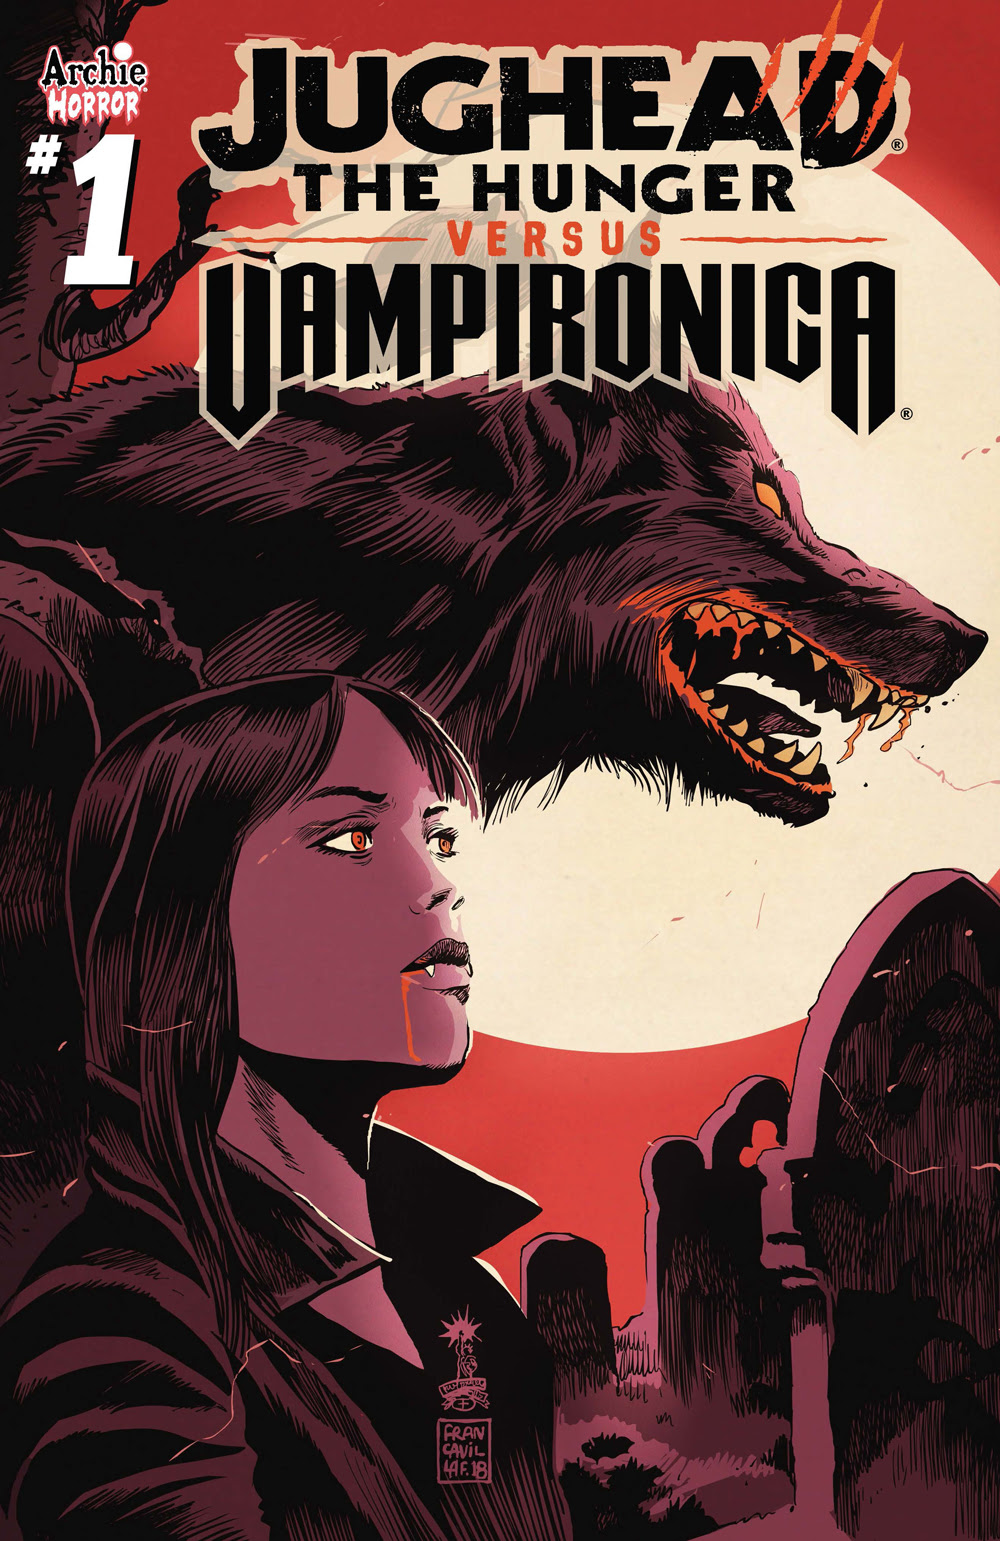 JUGHEAD: THE HUNGER VS. VAMPIRONICA #1: CVR B Francavilla